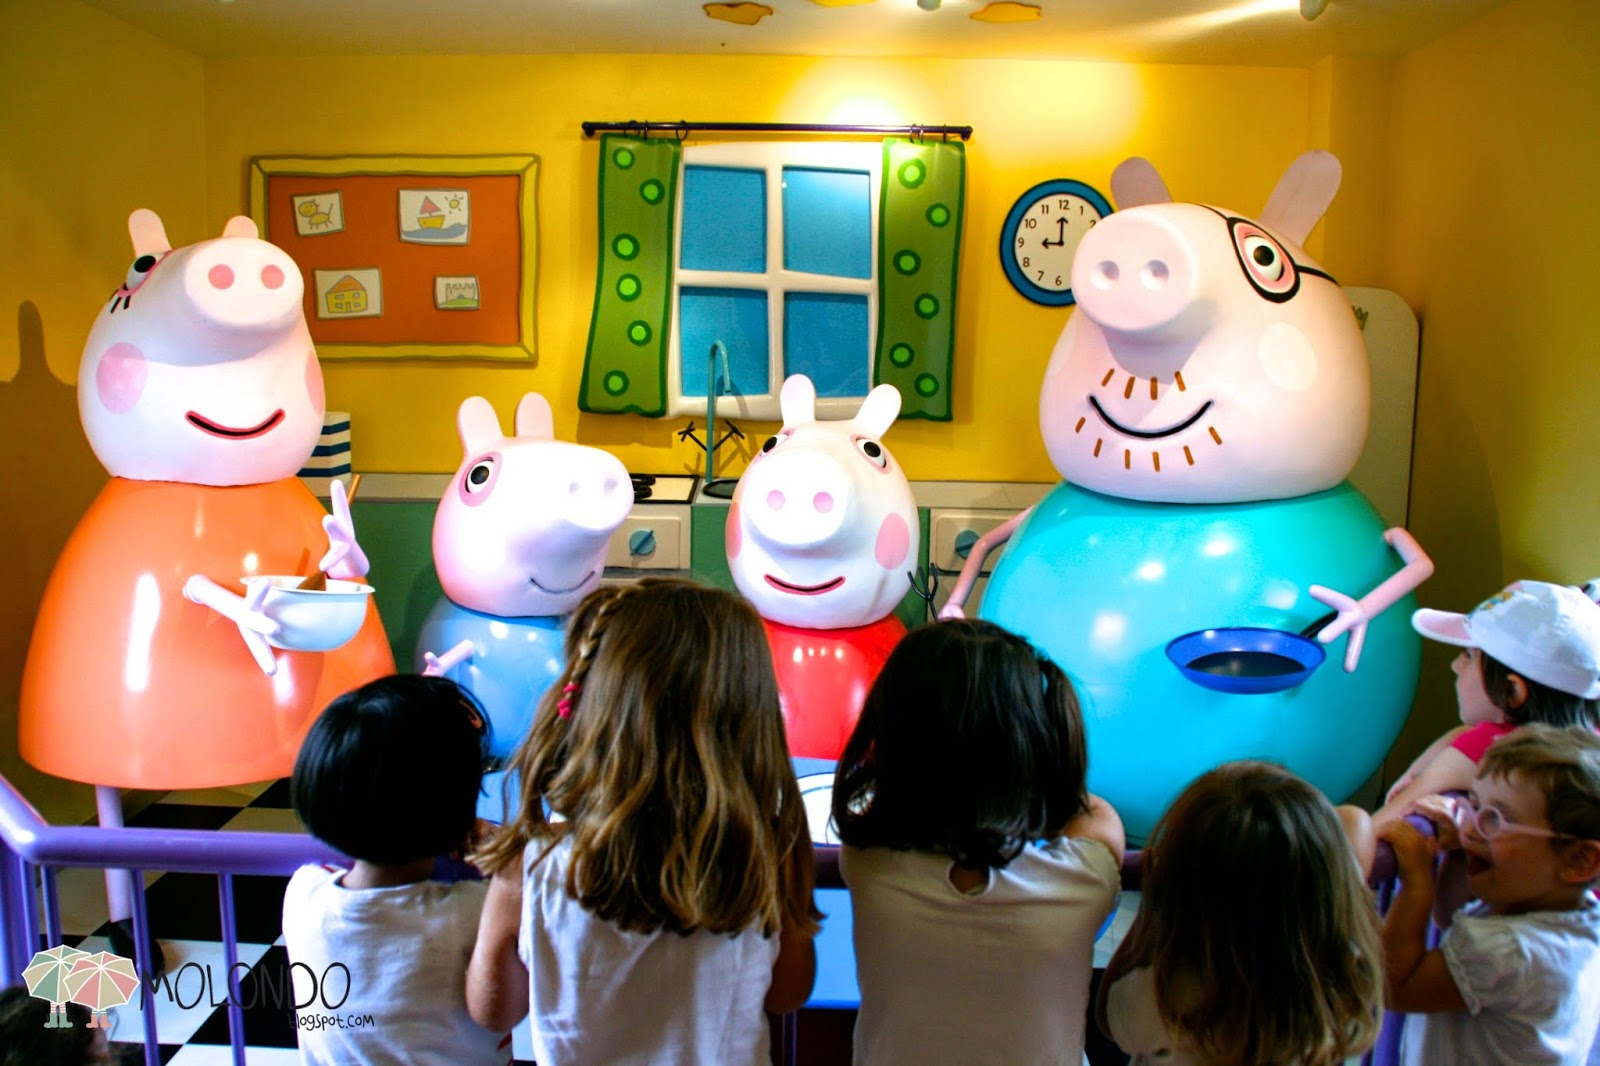 La Piscina De Peppa Pig Mati Andoli En Londres Peppa Pig 39s World The Best Plan With